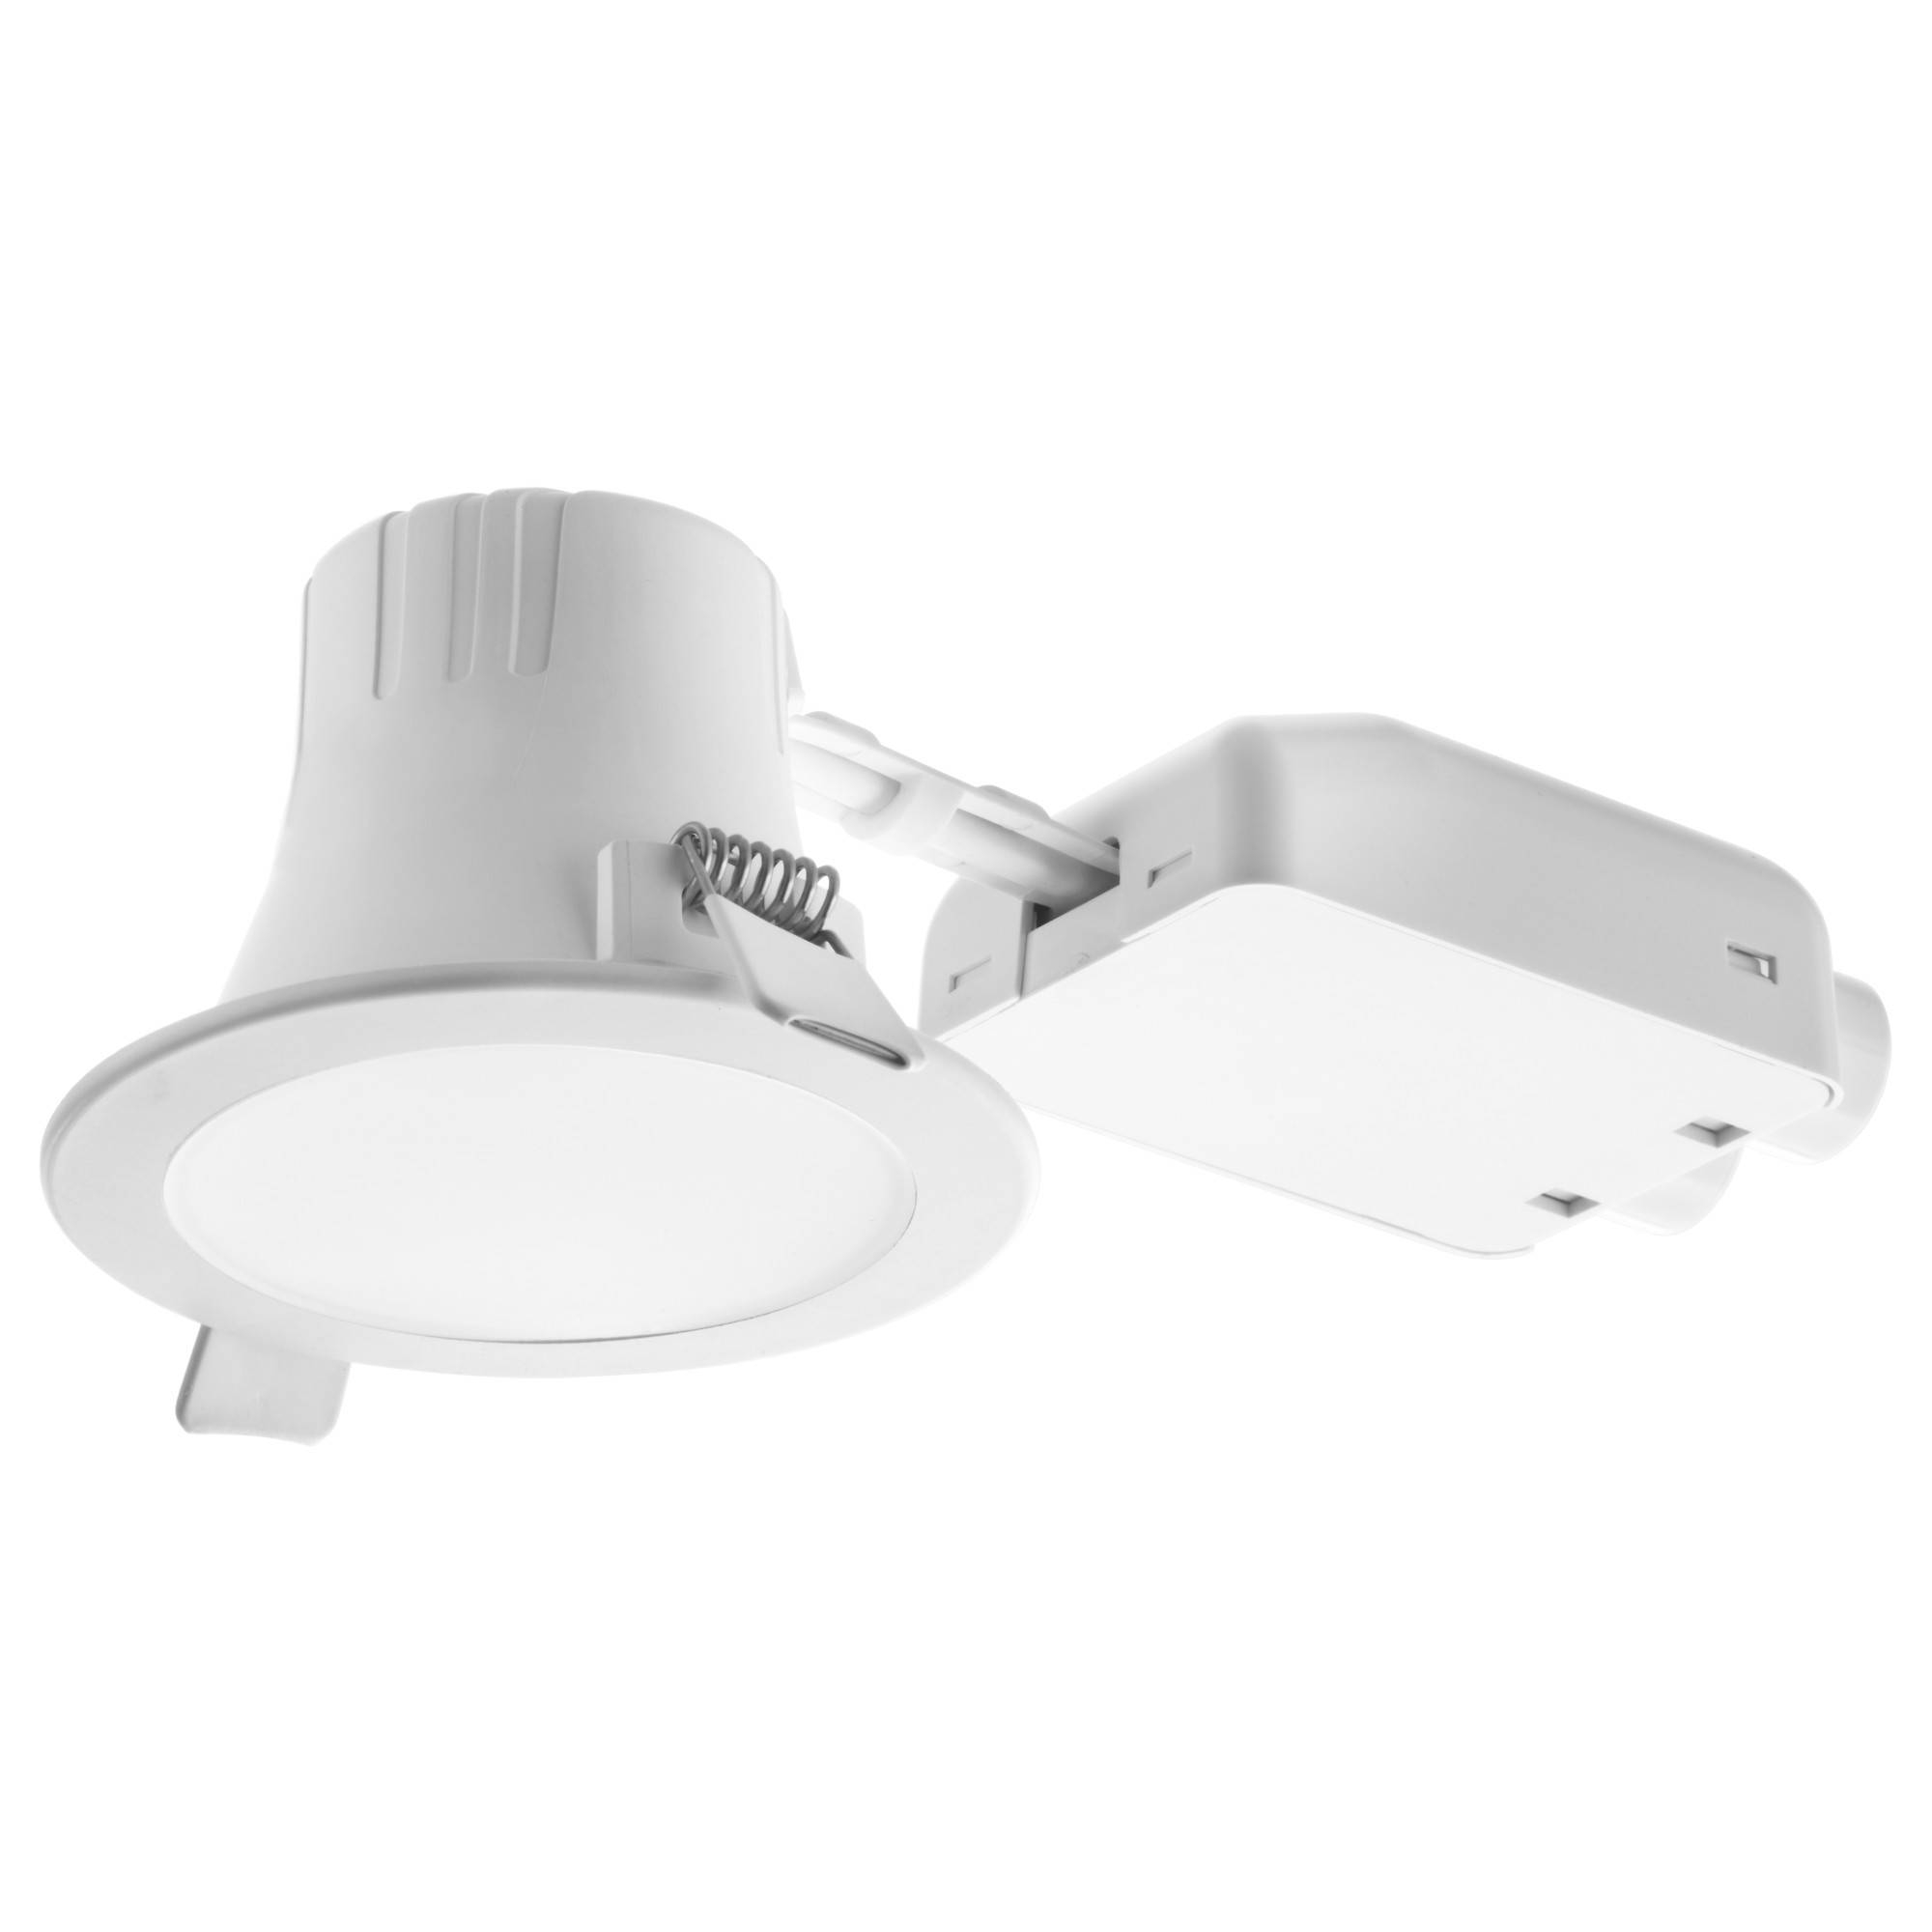 Lakene Led Recessed Spotlight Opal White – Ikea Regarding Ikea Recessed Lighting (View 9 of 15)